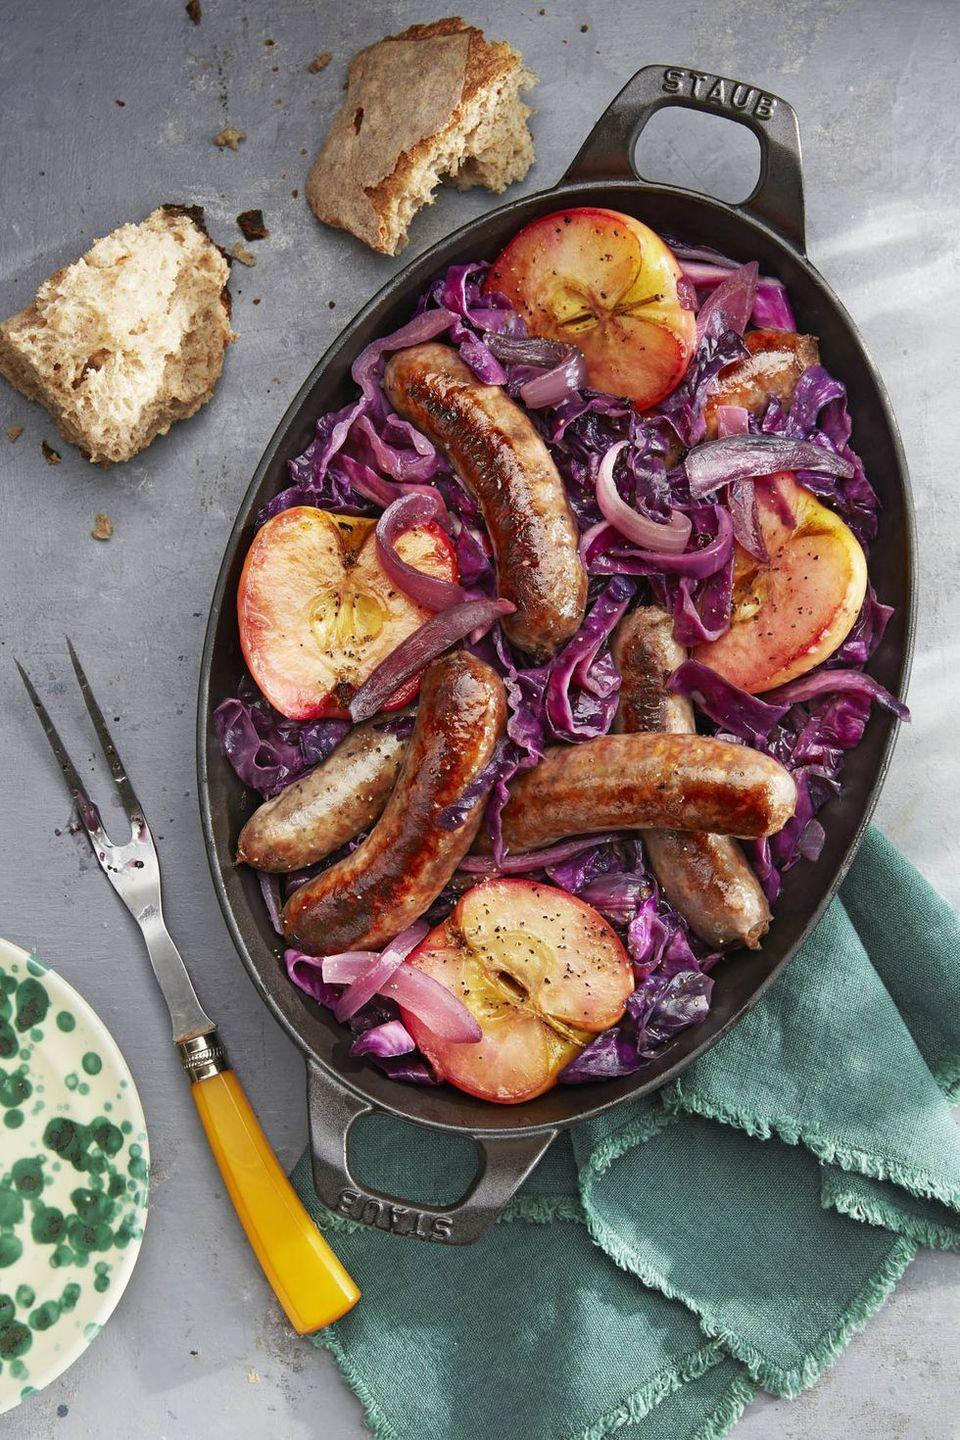 "<p>Use apples to step up the sweetness in this 35-minute meal.</p><p><strong><a href=""https://www.countryliving.com/food-drinks/a23336101/seared-sausage-with-cabbage-and-pink-lady-apples-recipe/"" rel=""nofollow noopener"" target=""_blank"" data-ylk=""slk:Get the recipe."" class=""link rapid-noclick-resp"">Get the recipe.</a></strong></p><p><strong><a class=""link rapid-noclick-resp"" href=""https://www.amazon.com/Lodge-Skillet-Pre-Seasoned-Skillet-Stovetop/dp/B00006JSUA?tag=syn-yahoo-20&ascsubtag=%5Bartid%7C10050.g.648%5Bsrc%7Cyahoo-us"" rel=""nofollow noopener"" target=""_blank"" data-ylk=""slk:SHOP CAST-IRON SKILLETS"">SHOP CAST-IRON SKILLETS</a><br></strong></p>"